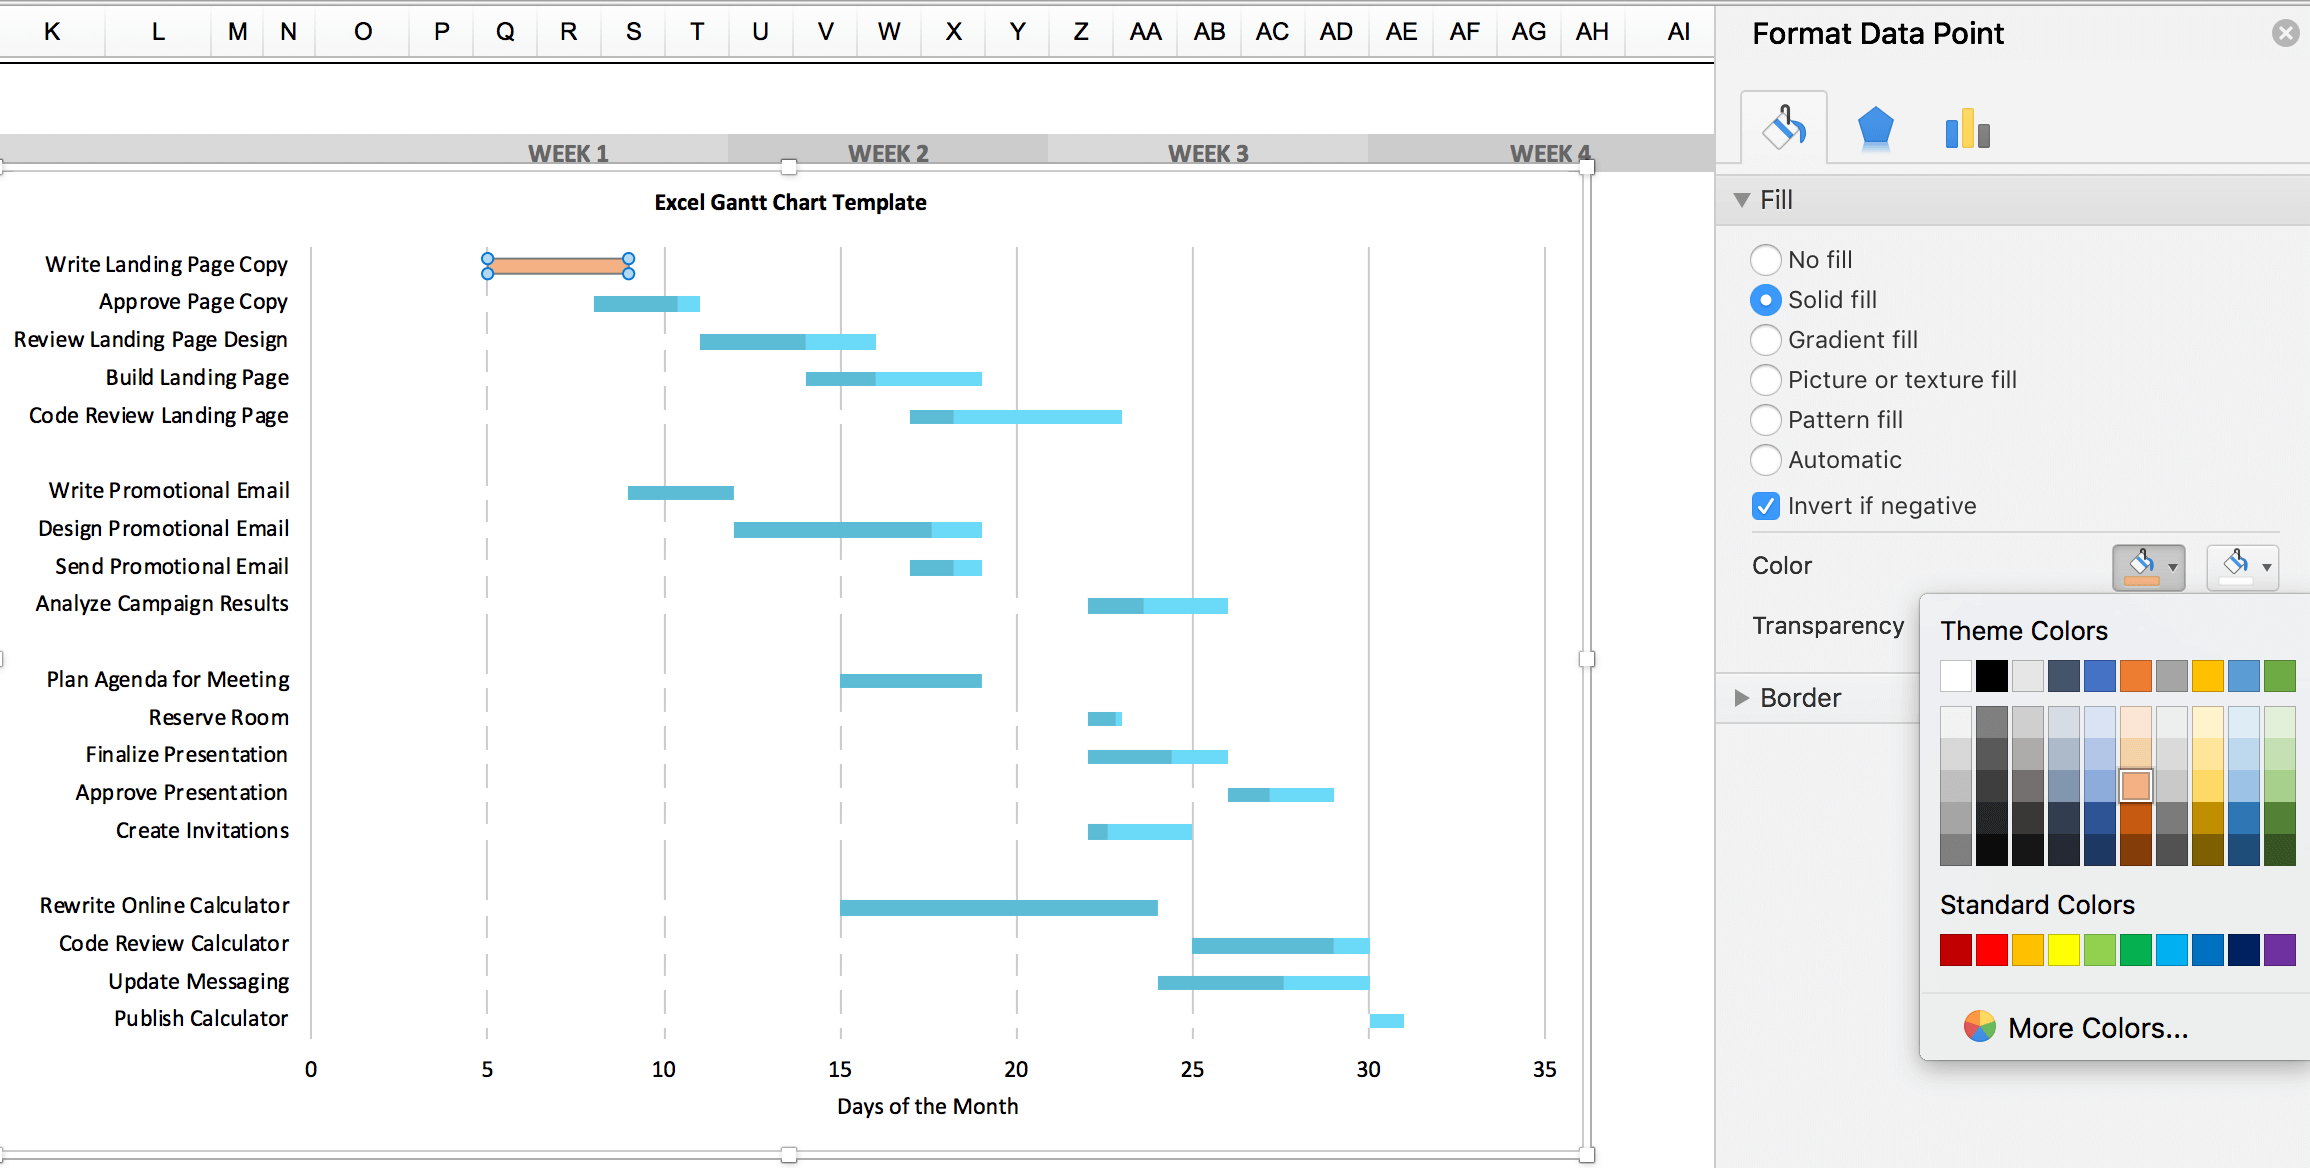 Free Gantt Chart Excel Template: Download Now | Teamgantt In Gantt Chart Template For Excel